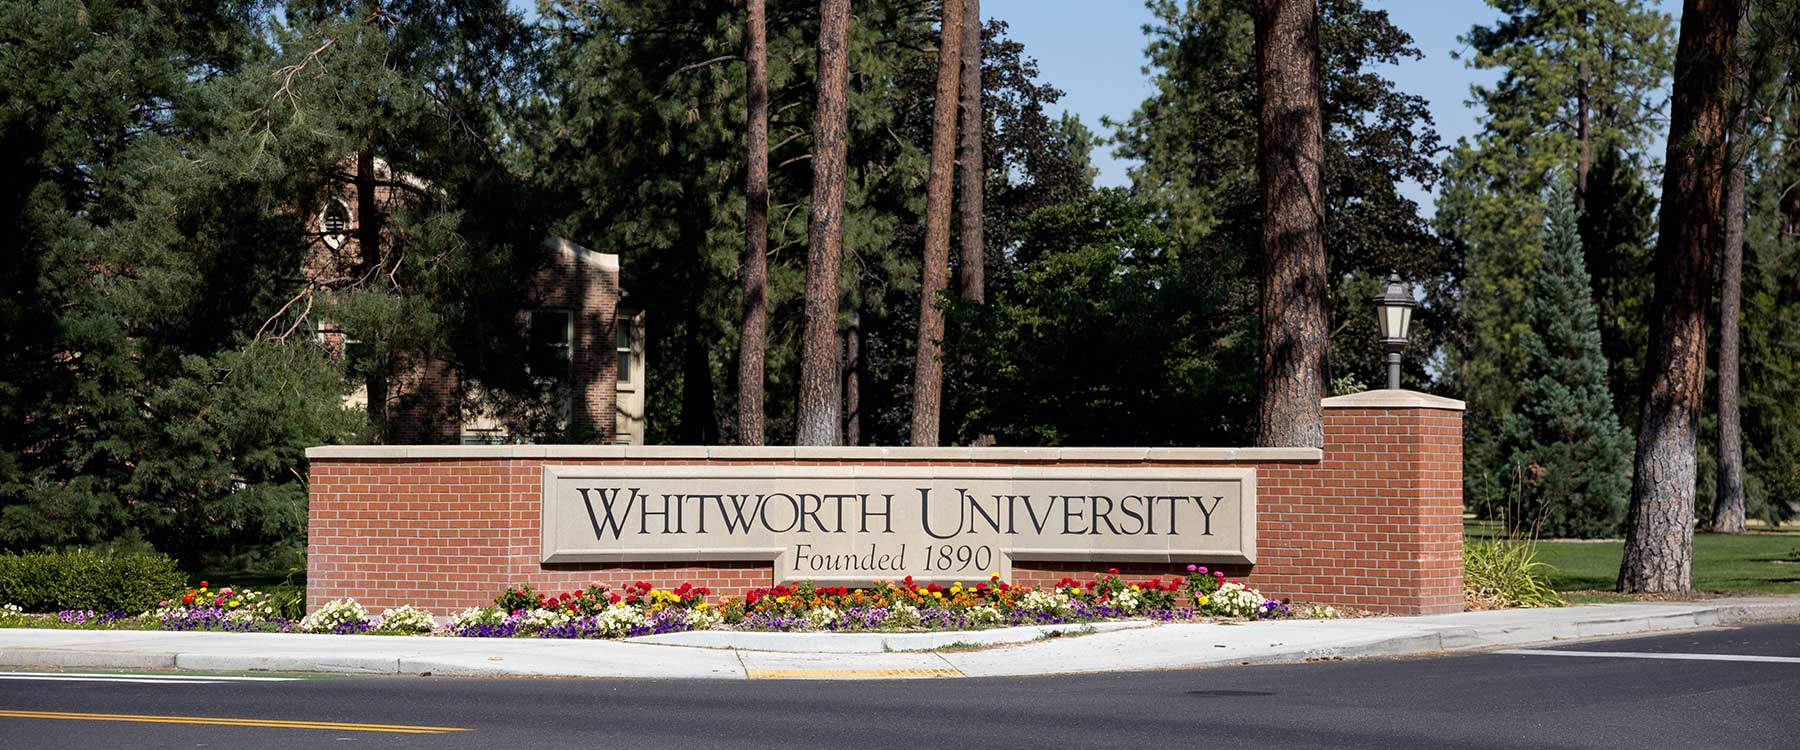 Whitworth University front entrance